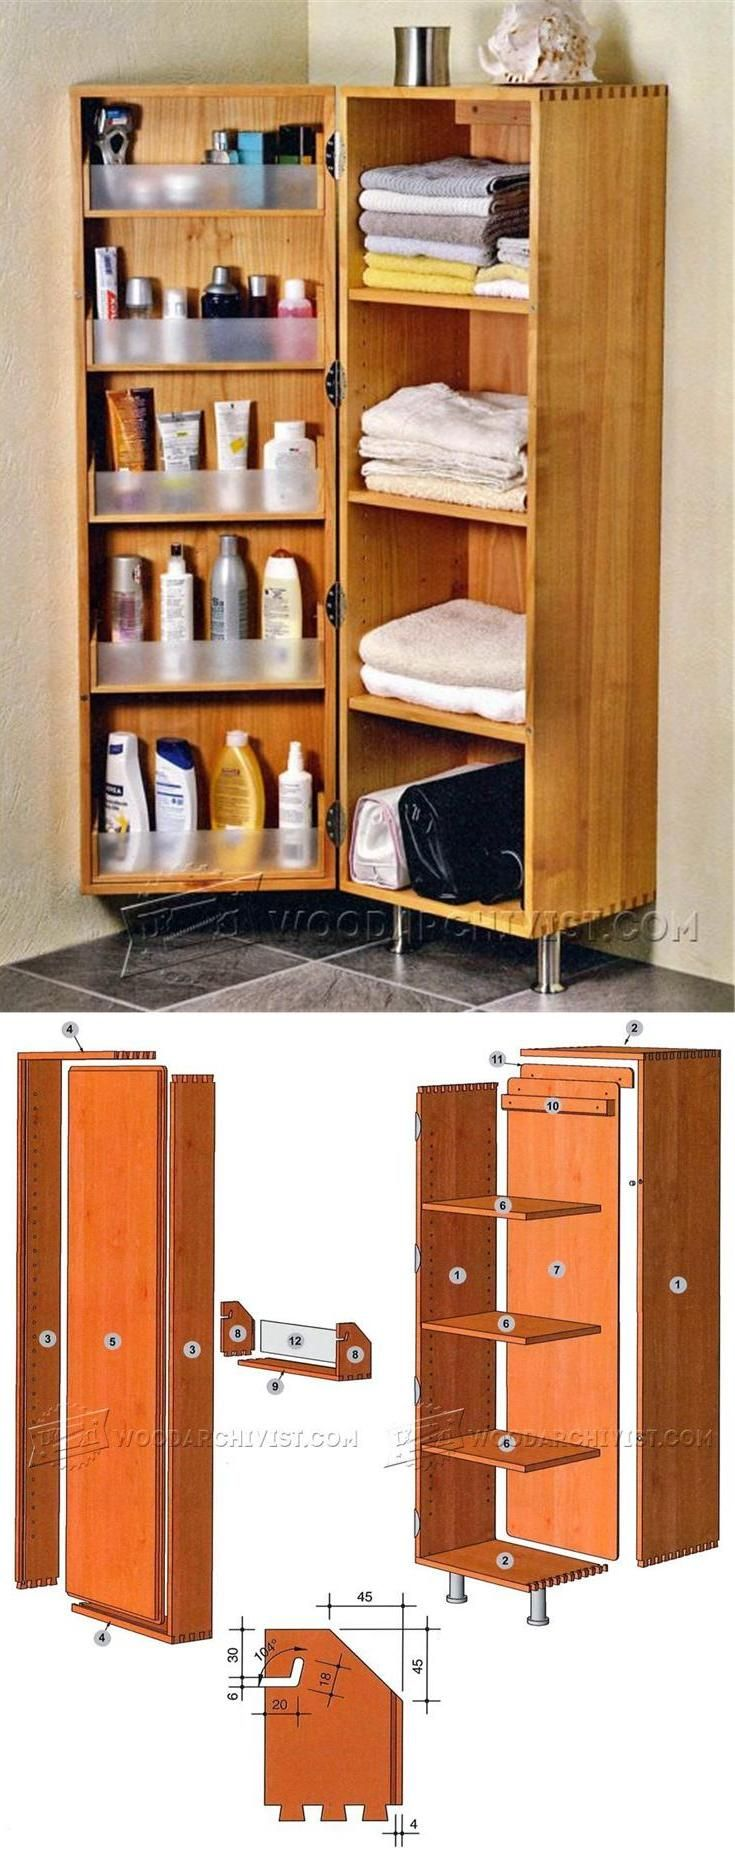 Bathroom corner cabinets - Bathroom Corner Cabinet Plans Furniture Plans And Projects Woodarchivist Com